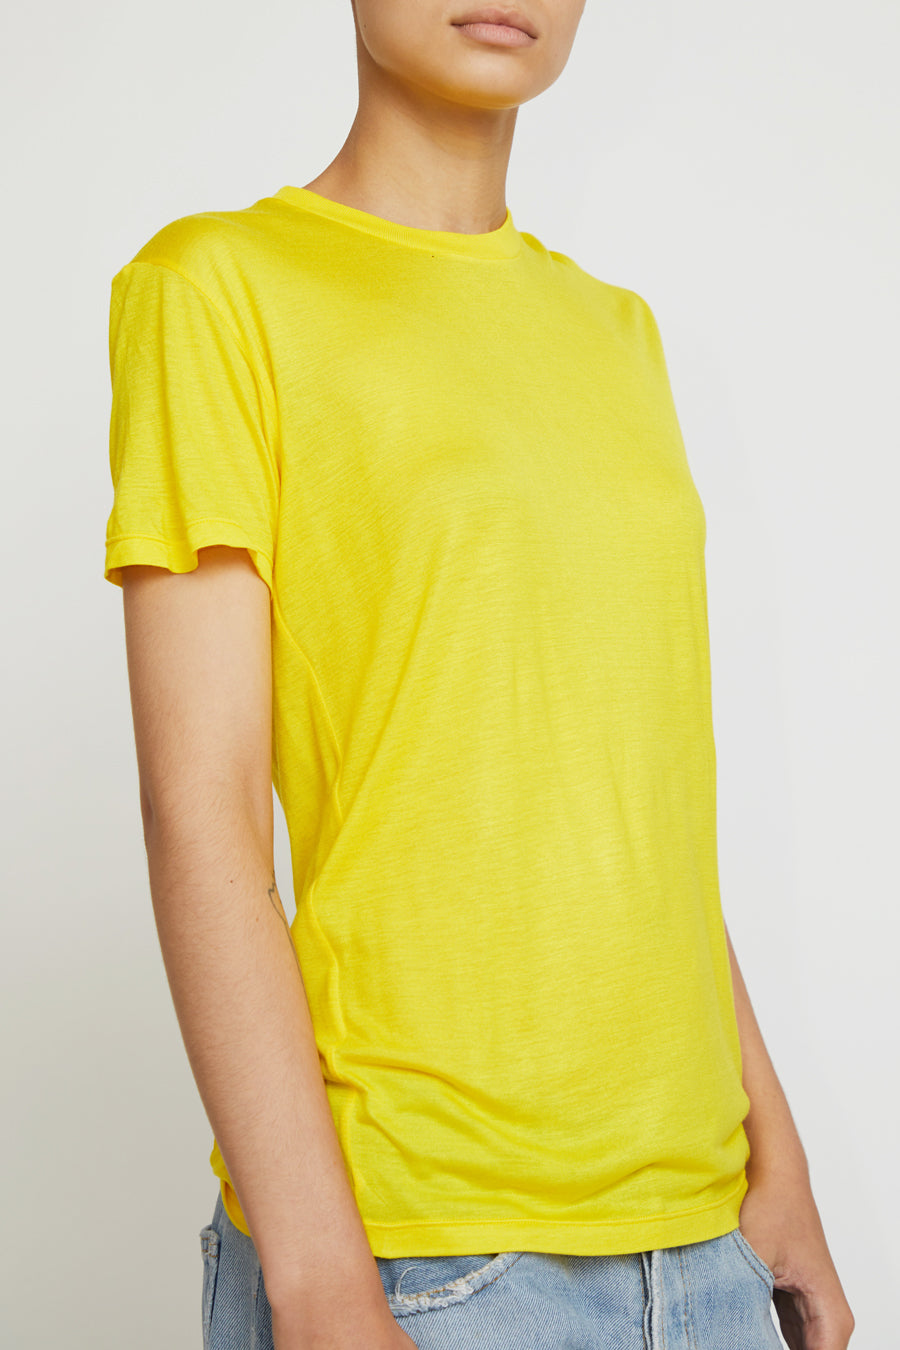 Baserange Tee Shirt in Braid Yellow Bamboo Jersey